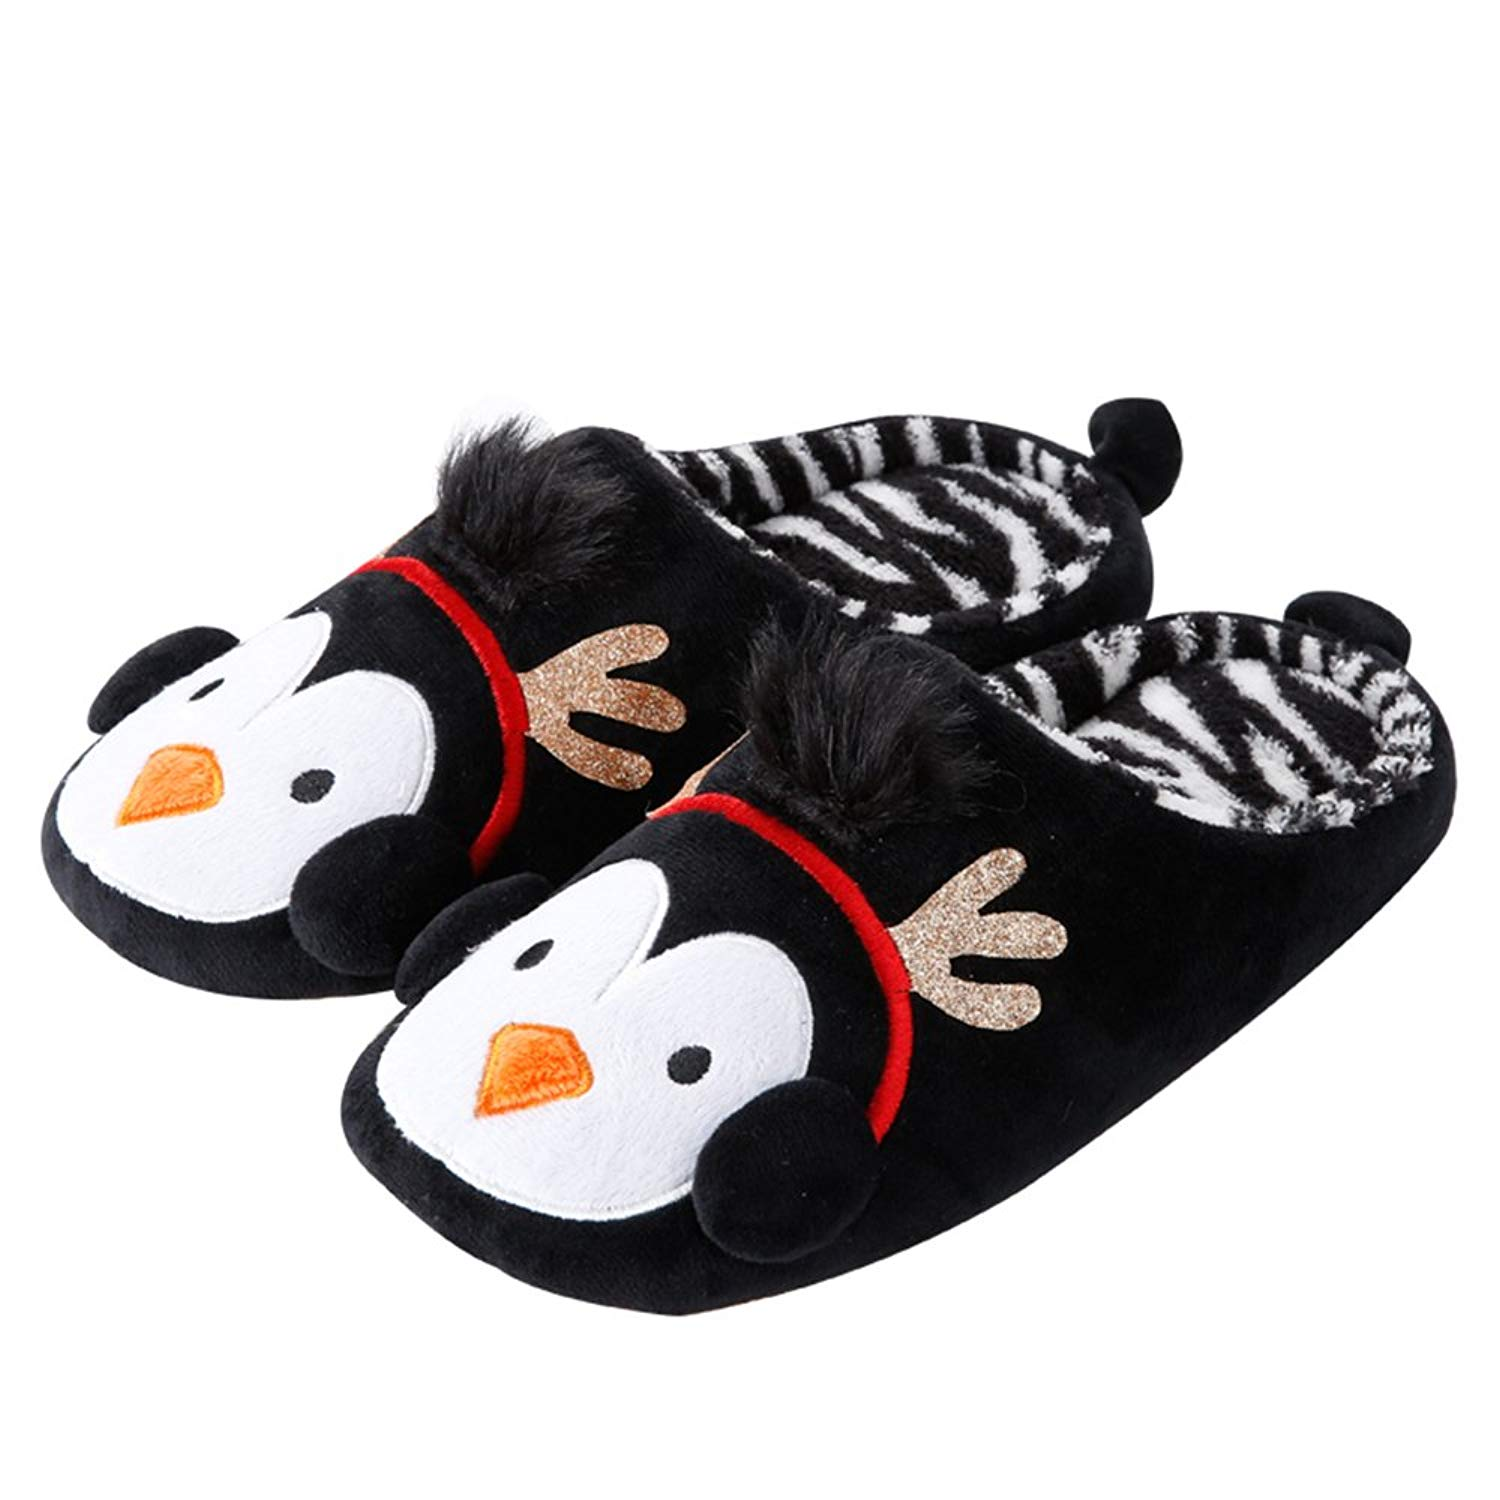 7f2c5a0cdca56 Get Quotations · Colias Wing Christmas Series Cuddly Cartoon Animal Penguin  Pattern Design Winter Soft Cozy Warm Slippers Anti